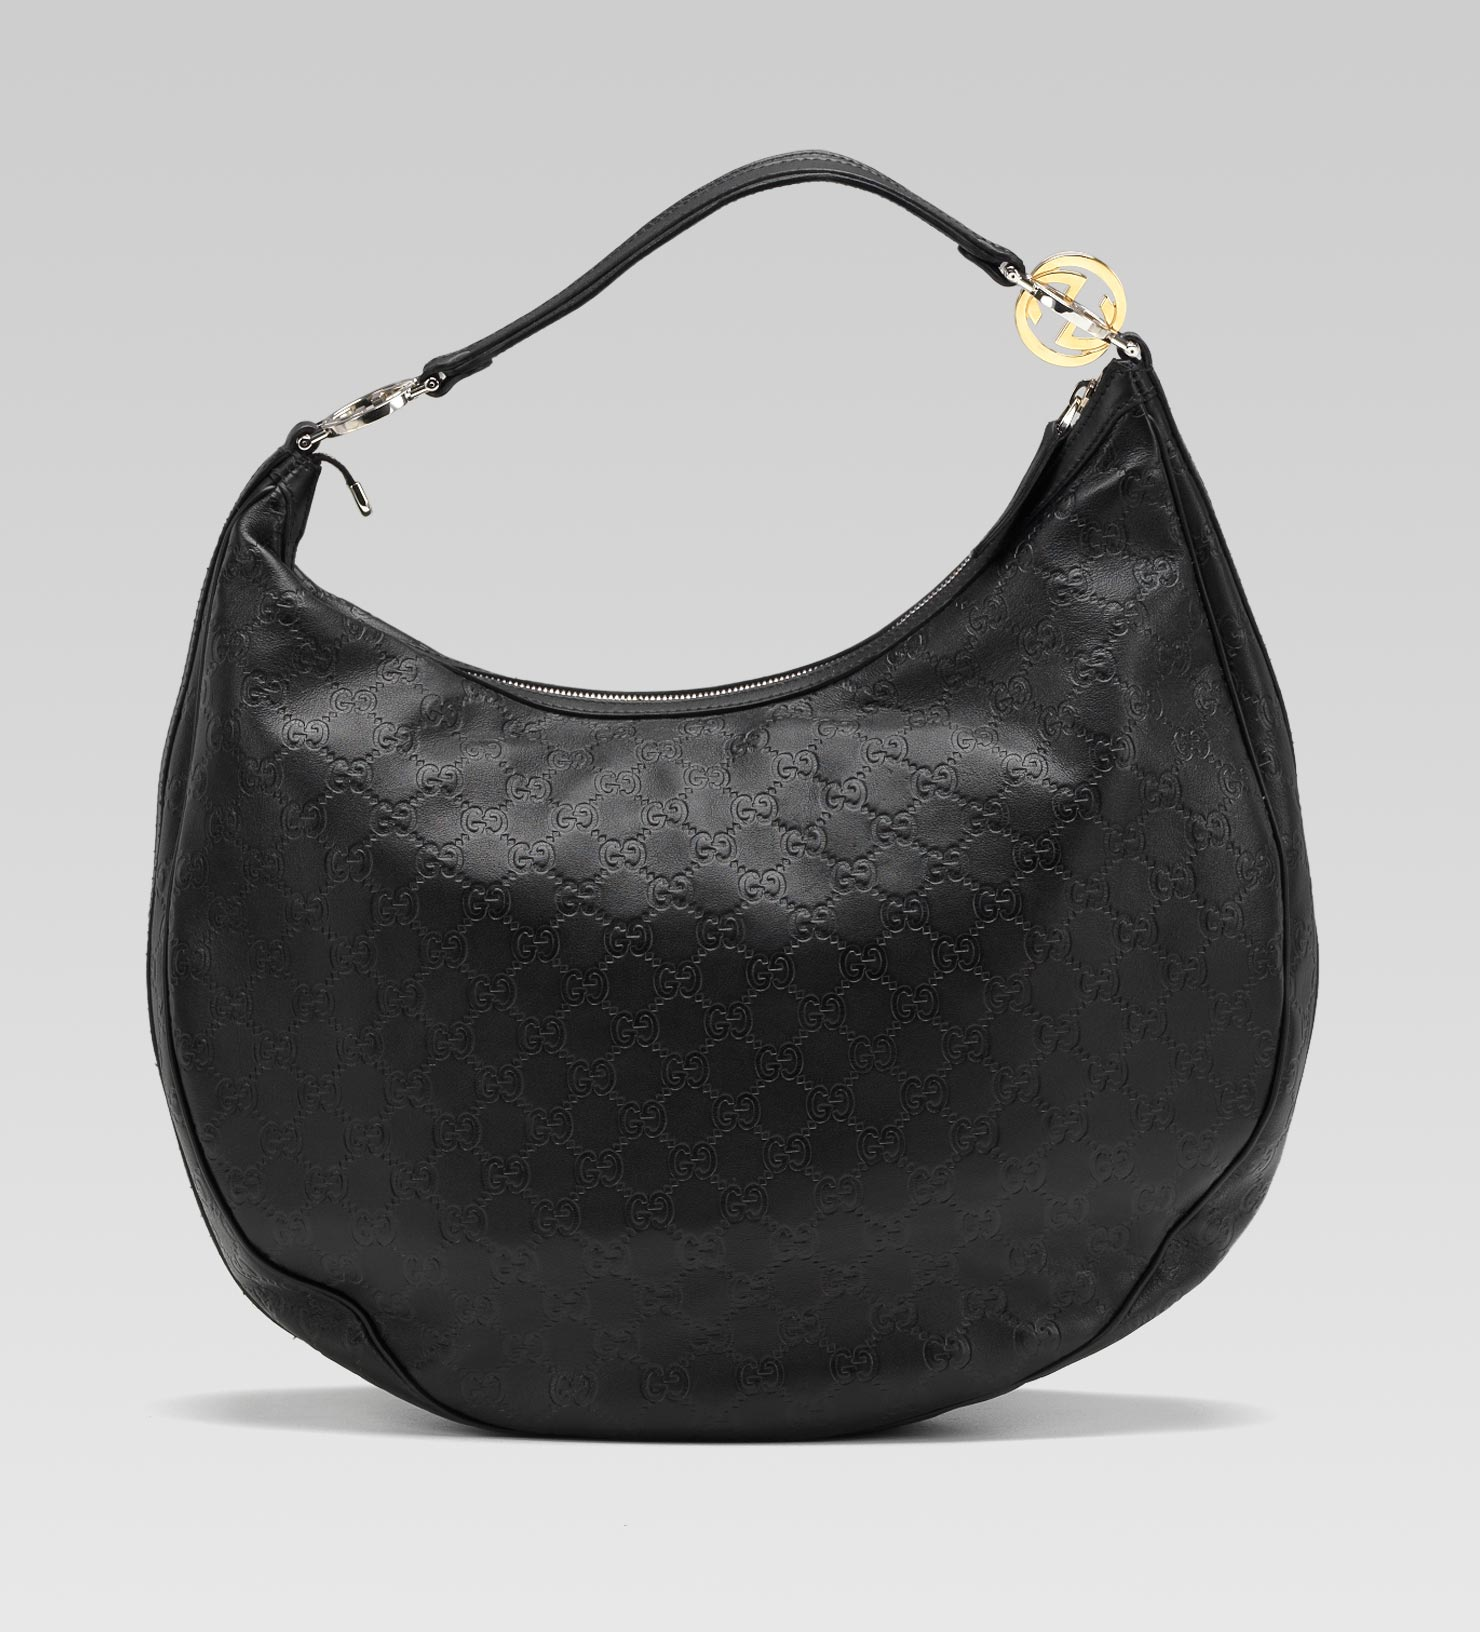 52eb3eaff16f Lyst - Gucci Gg Twins Large Hobo with Interlocking G Ornaments in Black